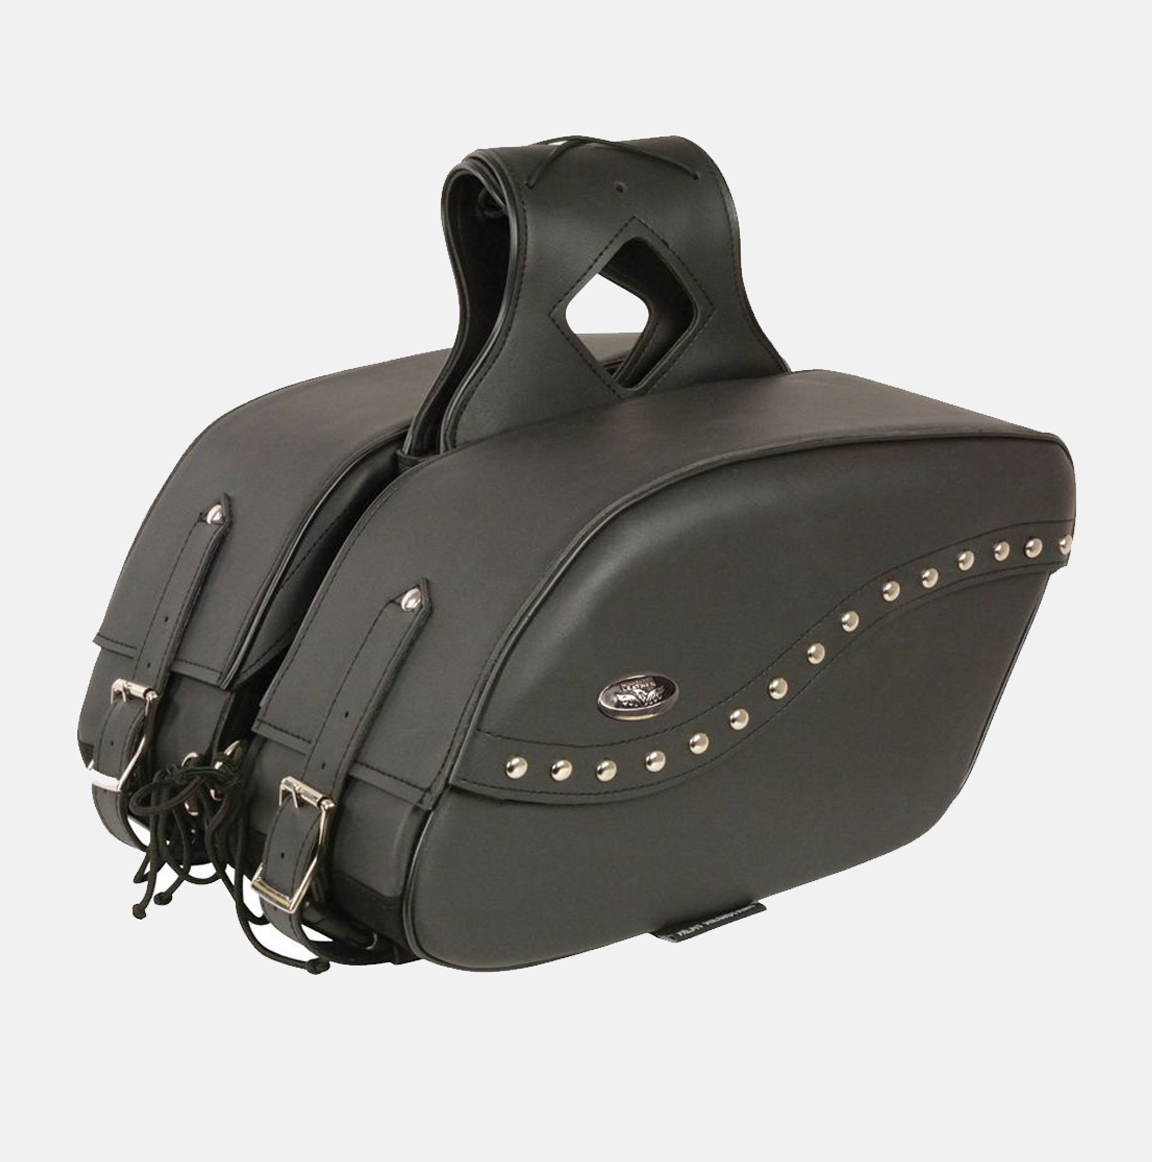 Motorcycle saddlebag two piece pvc studded bikers gear for Motor cycle saddle bags